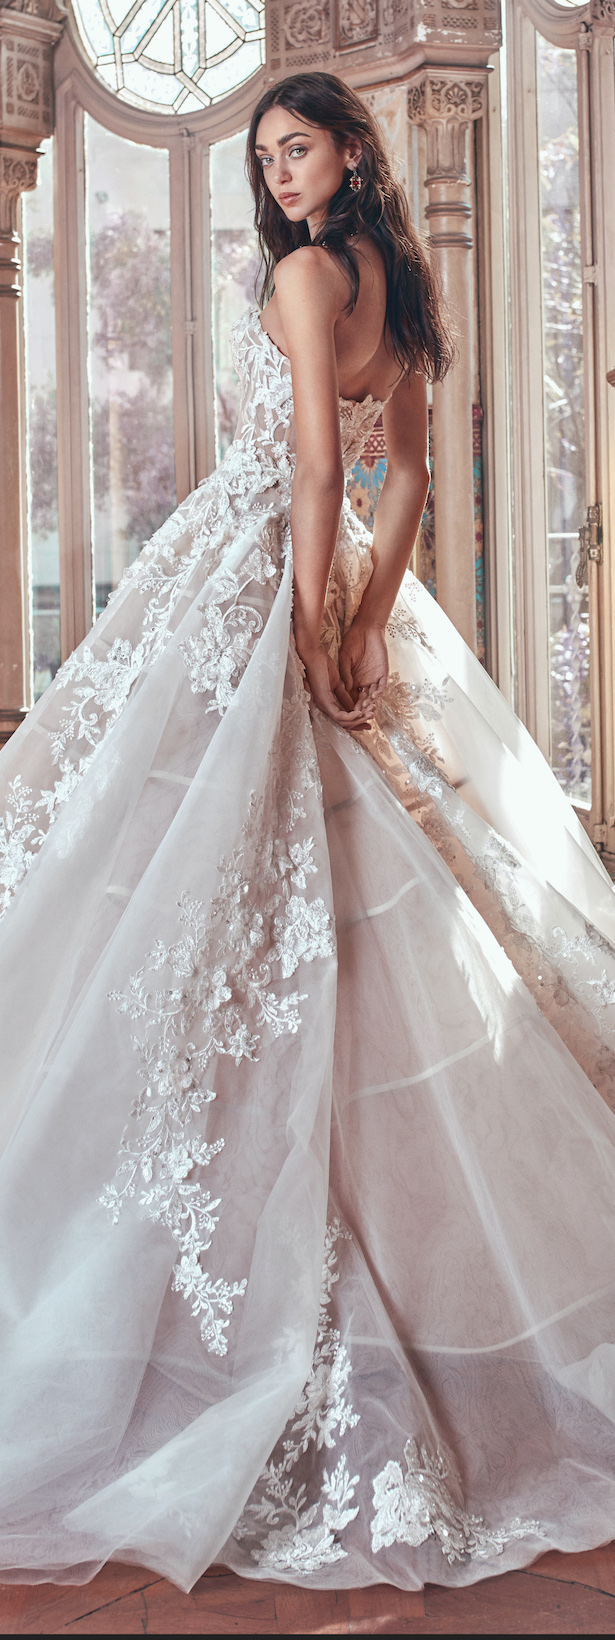 Galia Lahav Wedding Dress Collection 2018- Victorian Affinity - Alma